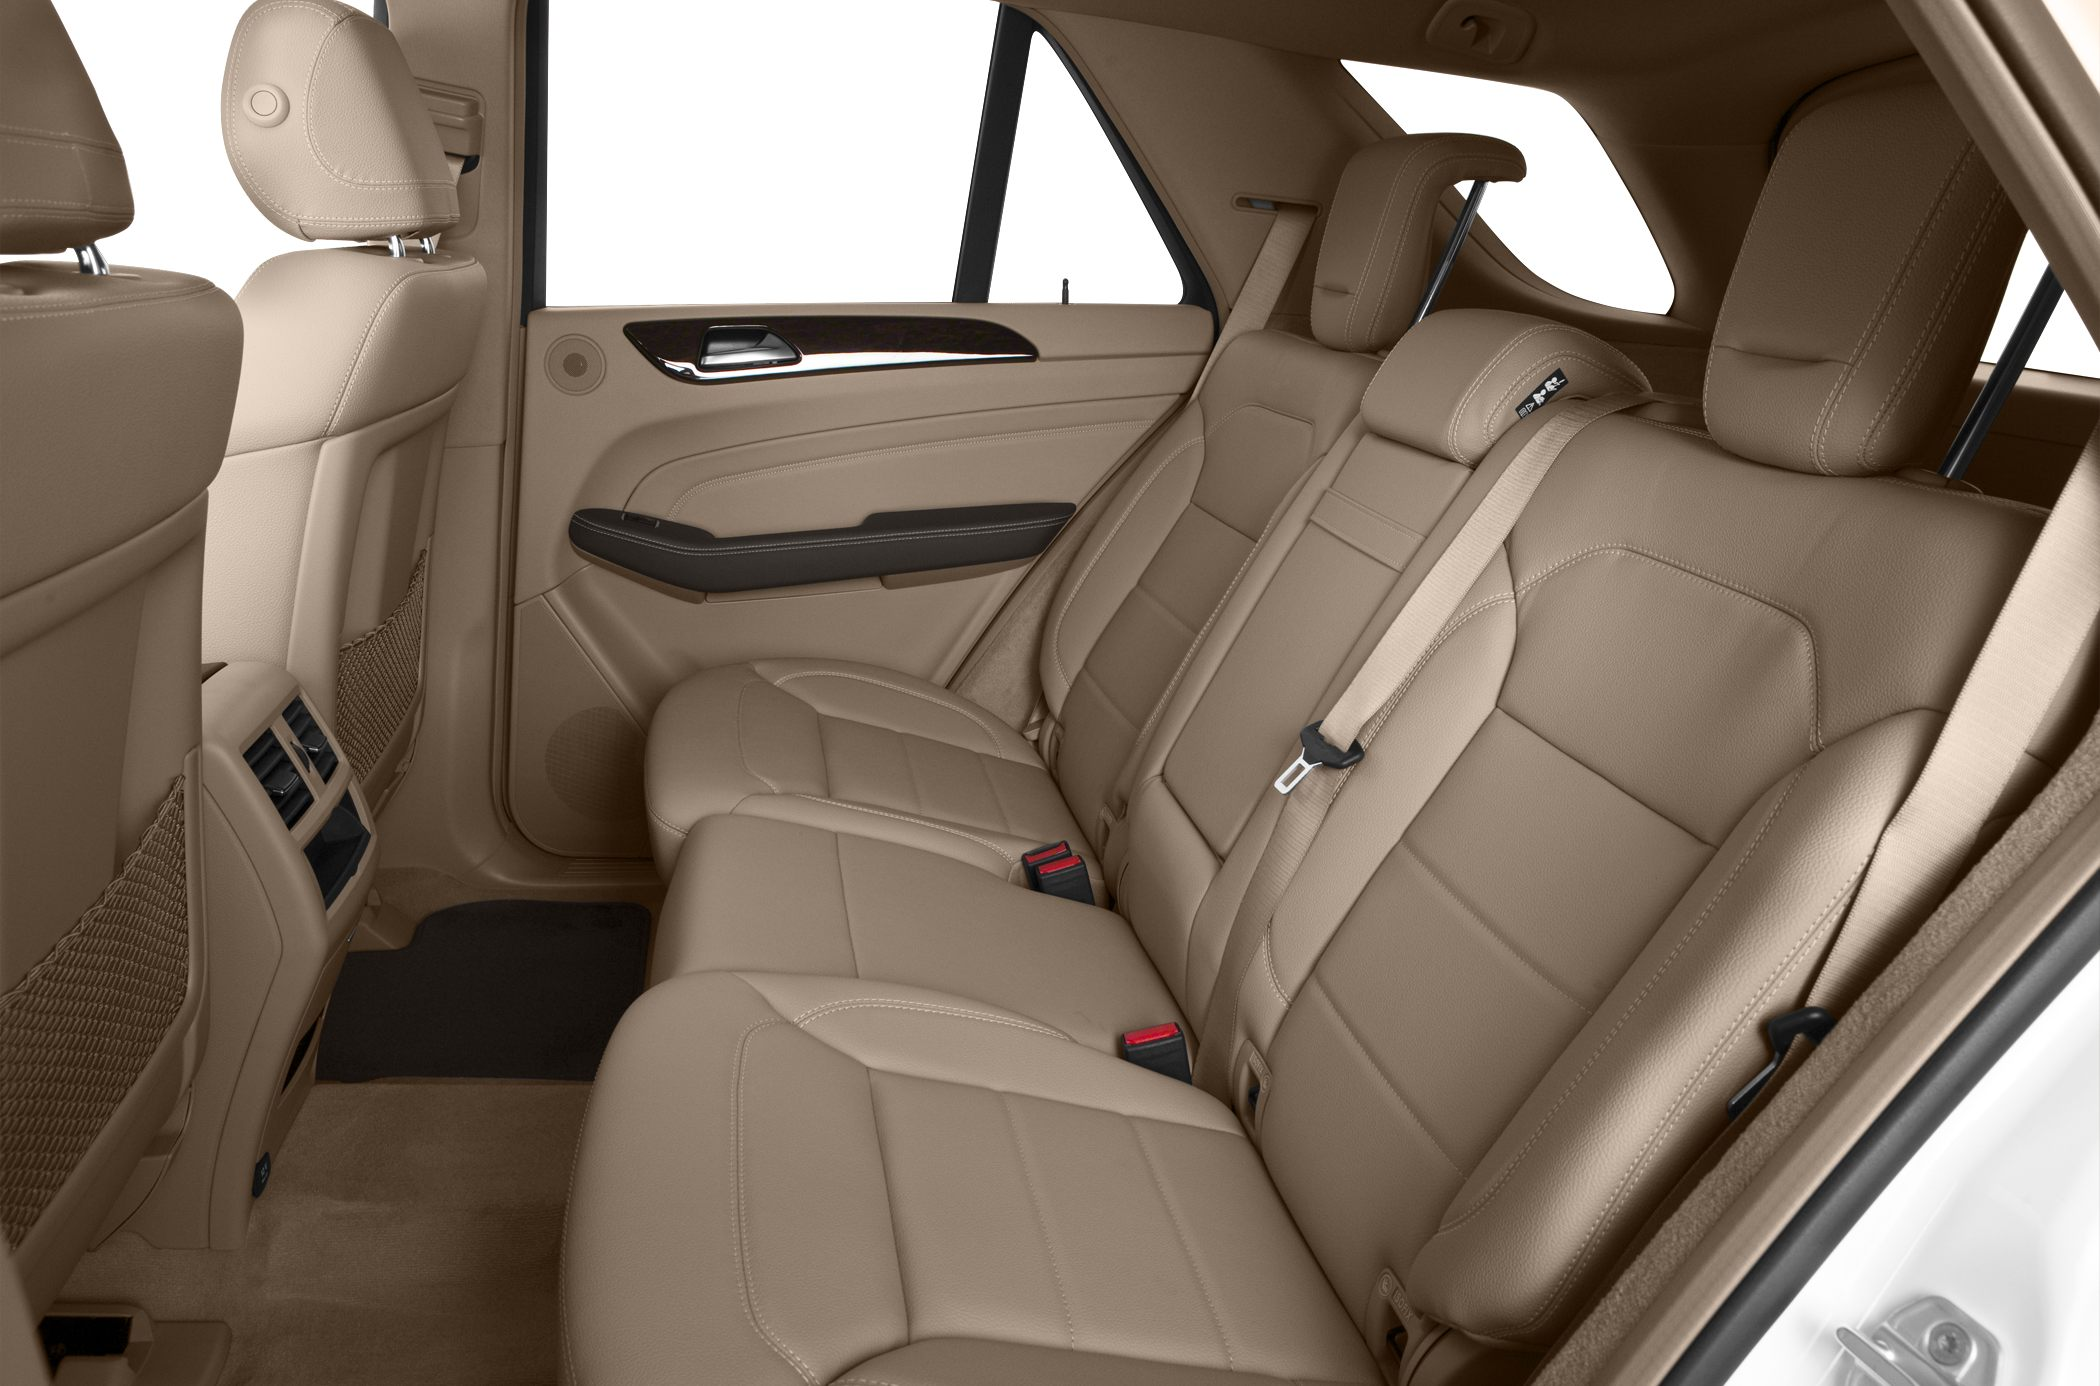 2014 Mercedes-Benz ML350 Backseat